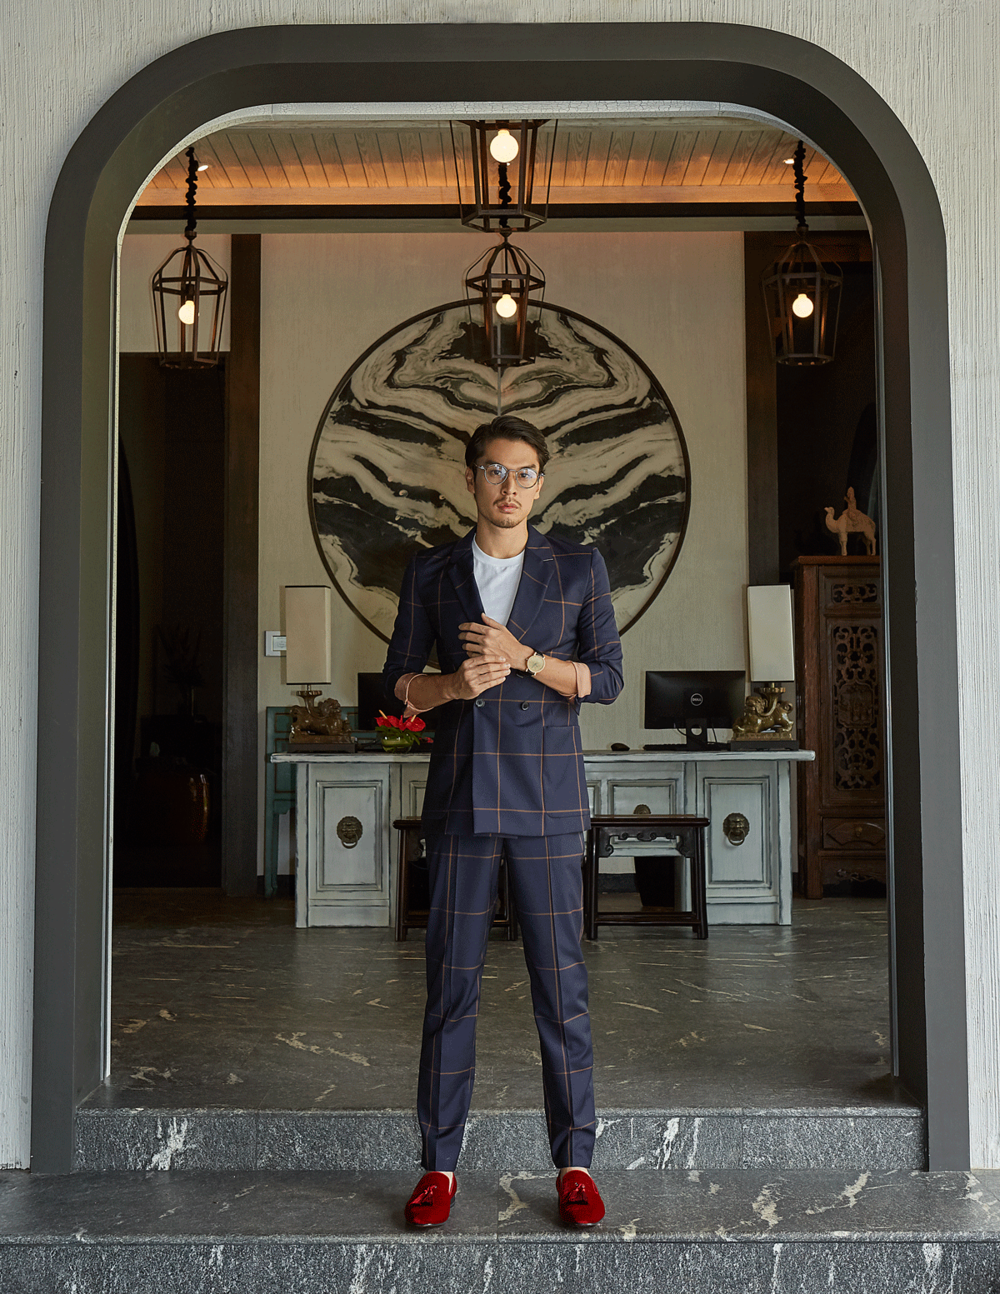 suit : Paul Smith / tshirt : Jockey / shoes : Christian Louboutin  eyeglasses : TAVAT / watch : FORREST